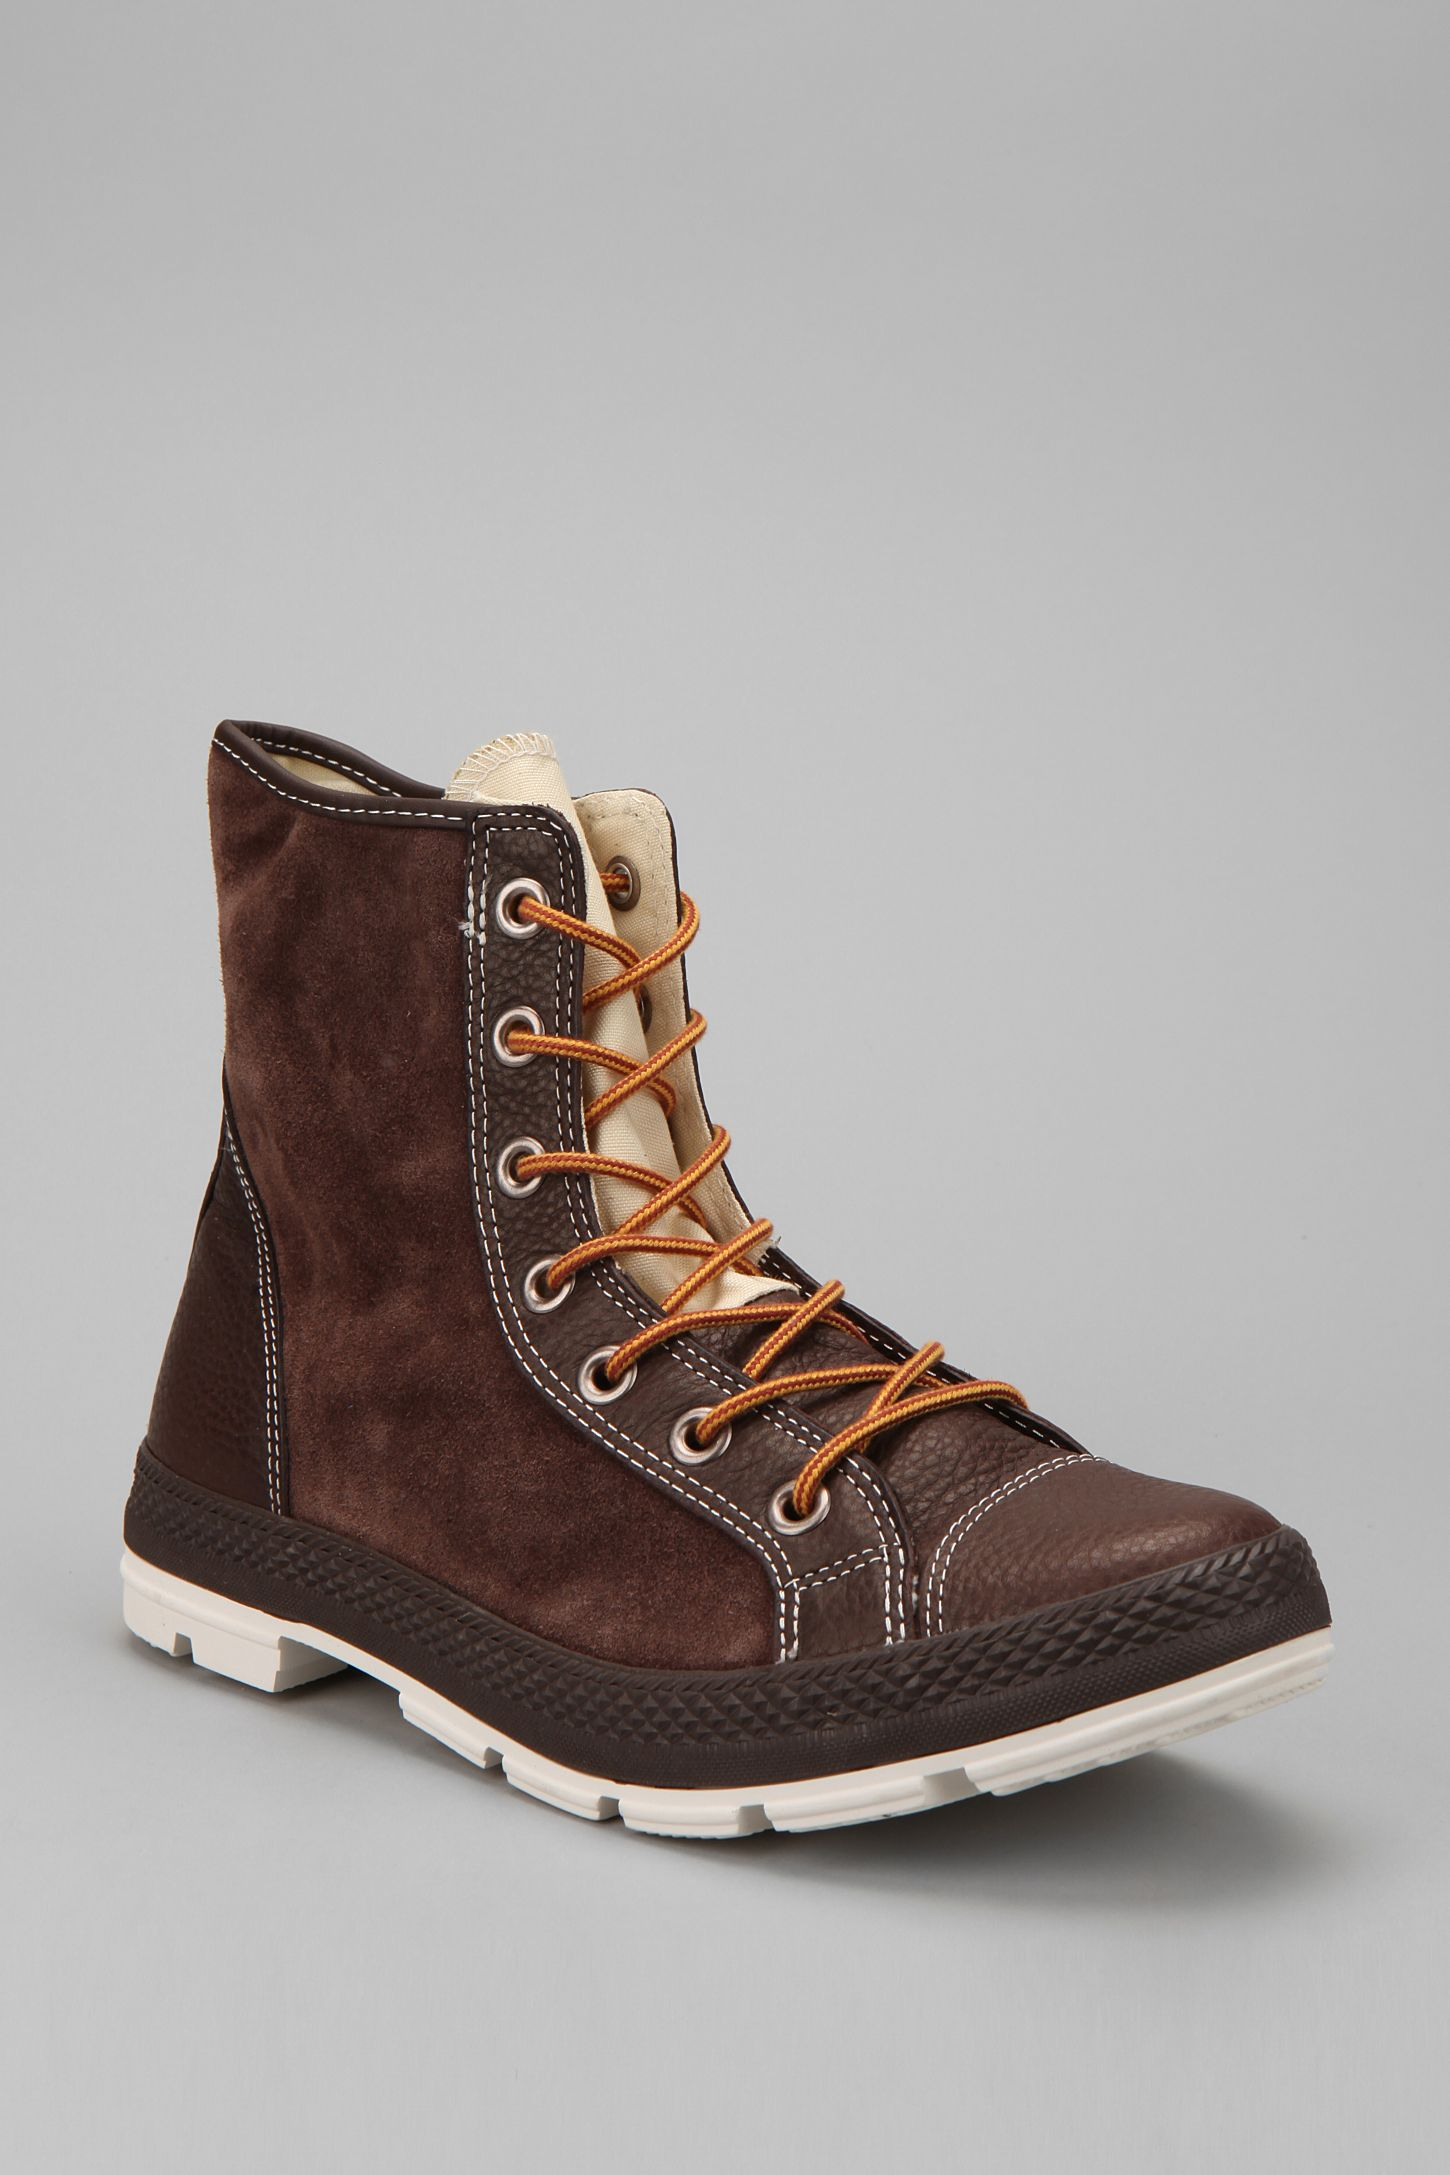 e42bf17a065f46 Converse All Star Leather Outsider Boot